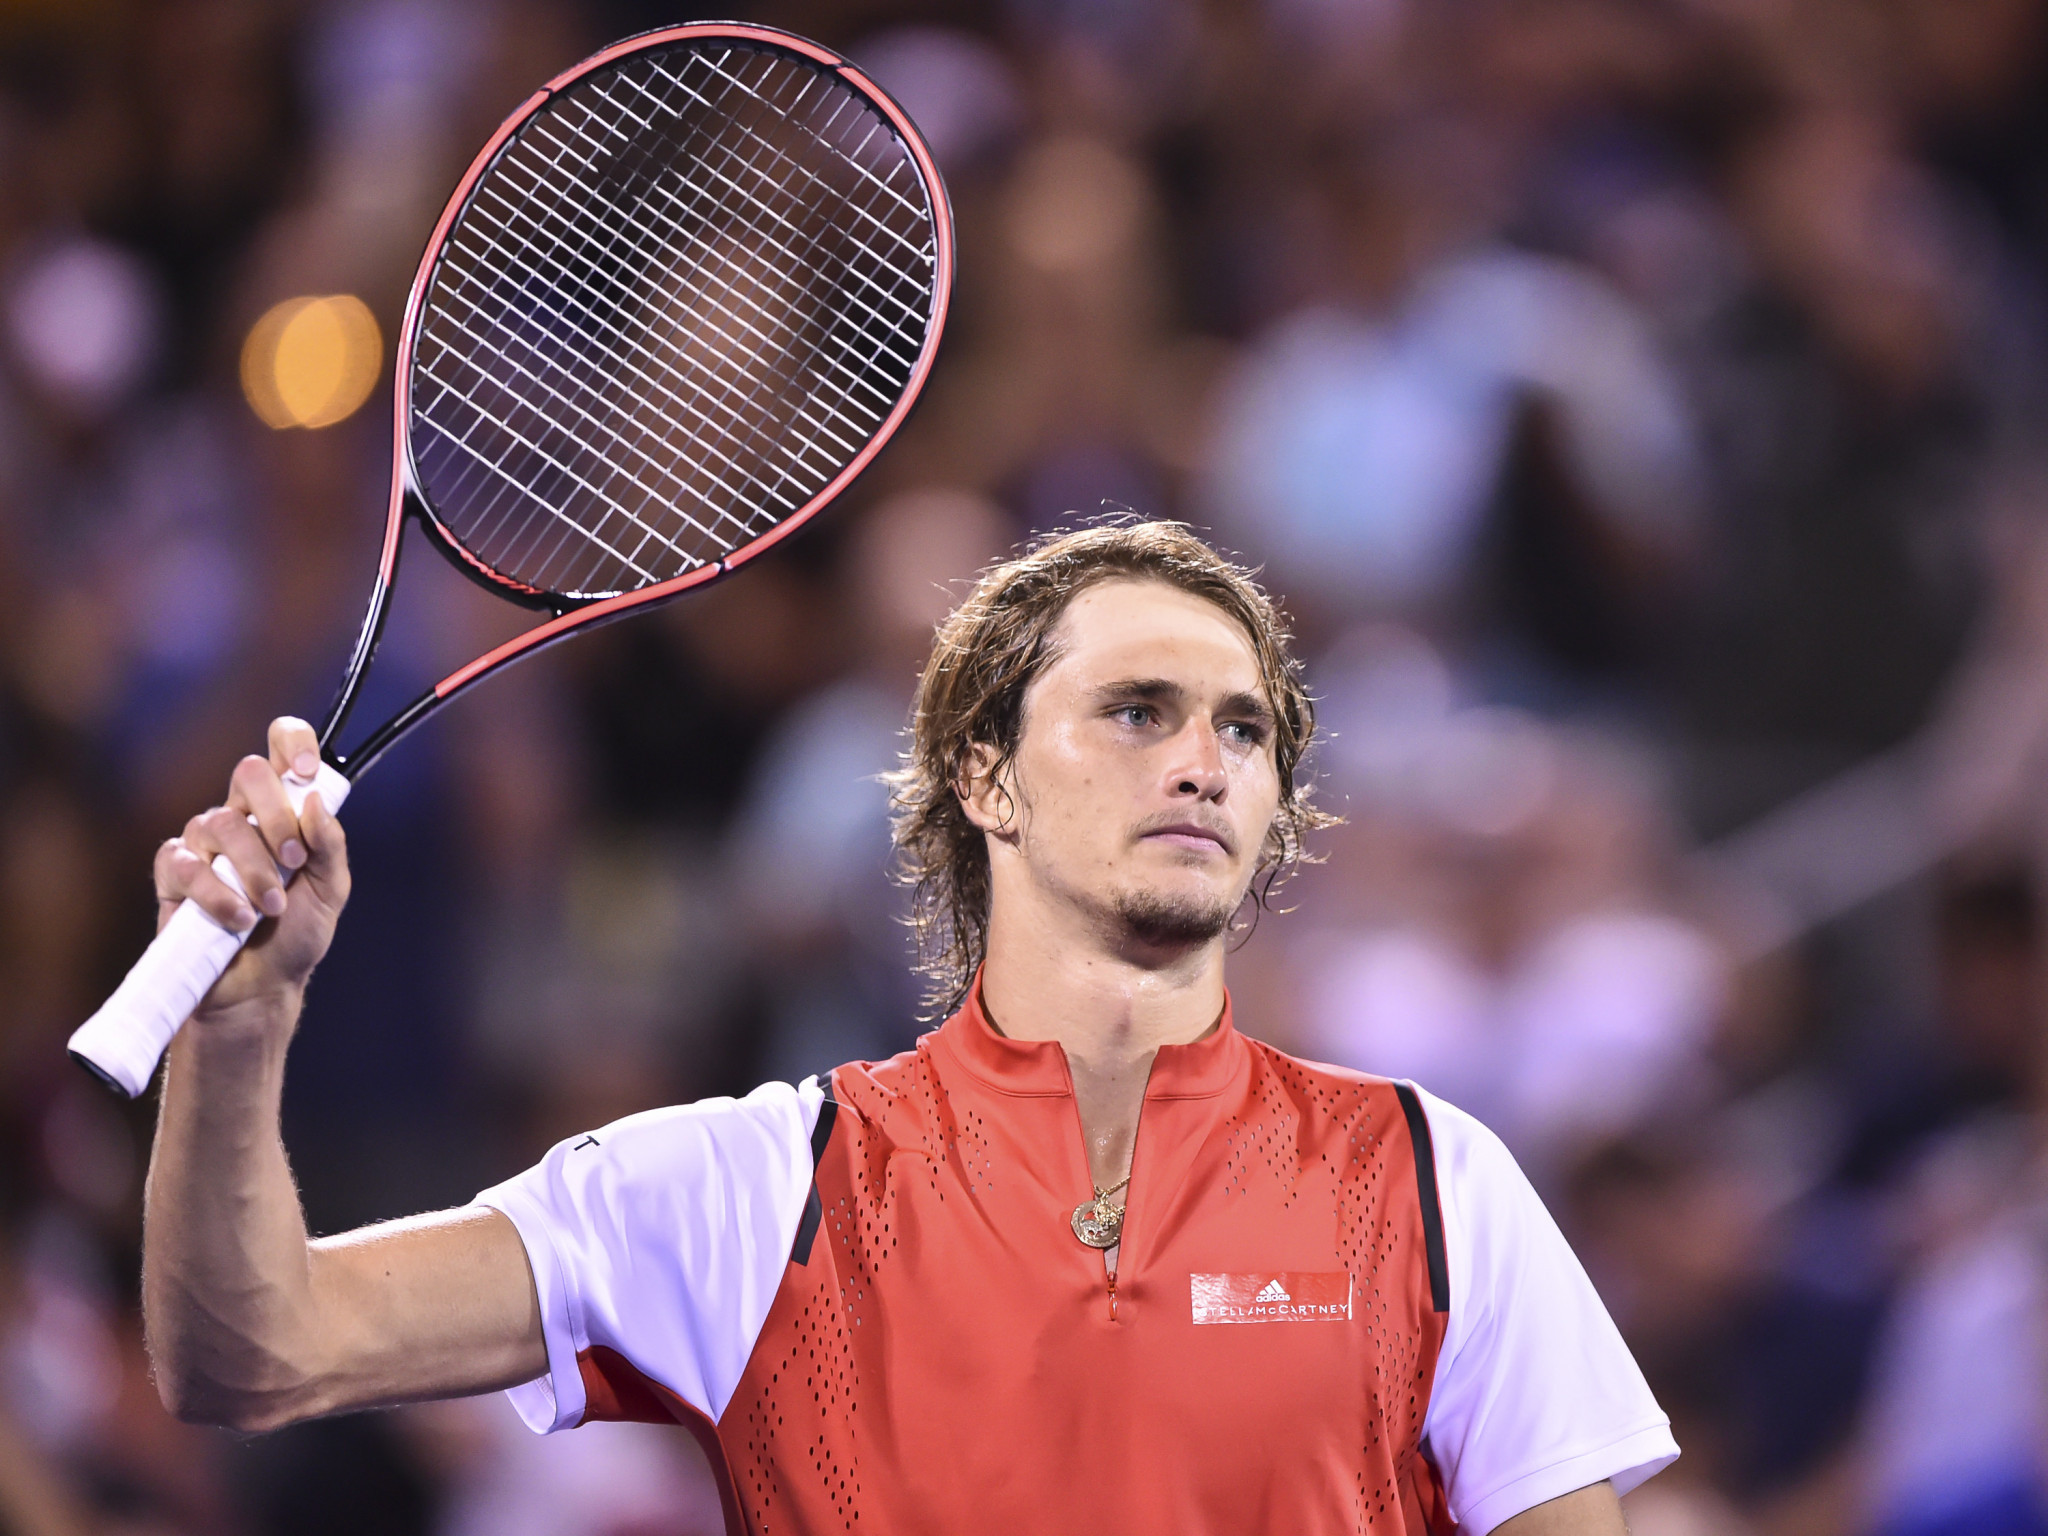 Germany's third seed Alexander Zverev made it through comfortably ©Getty Images